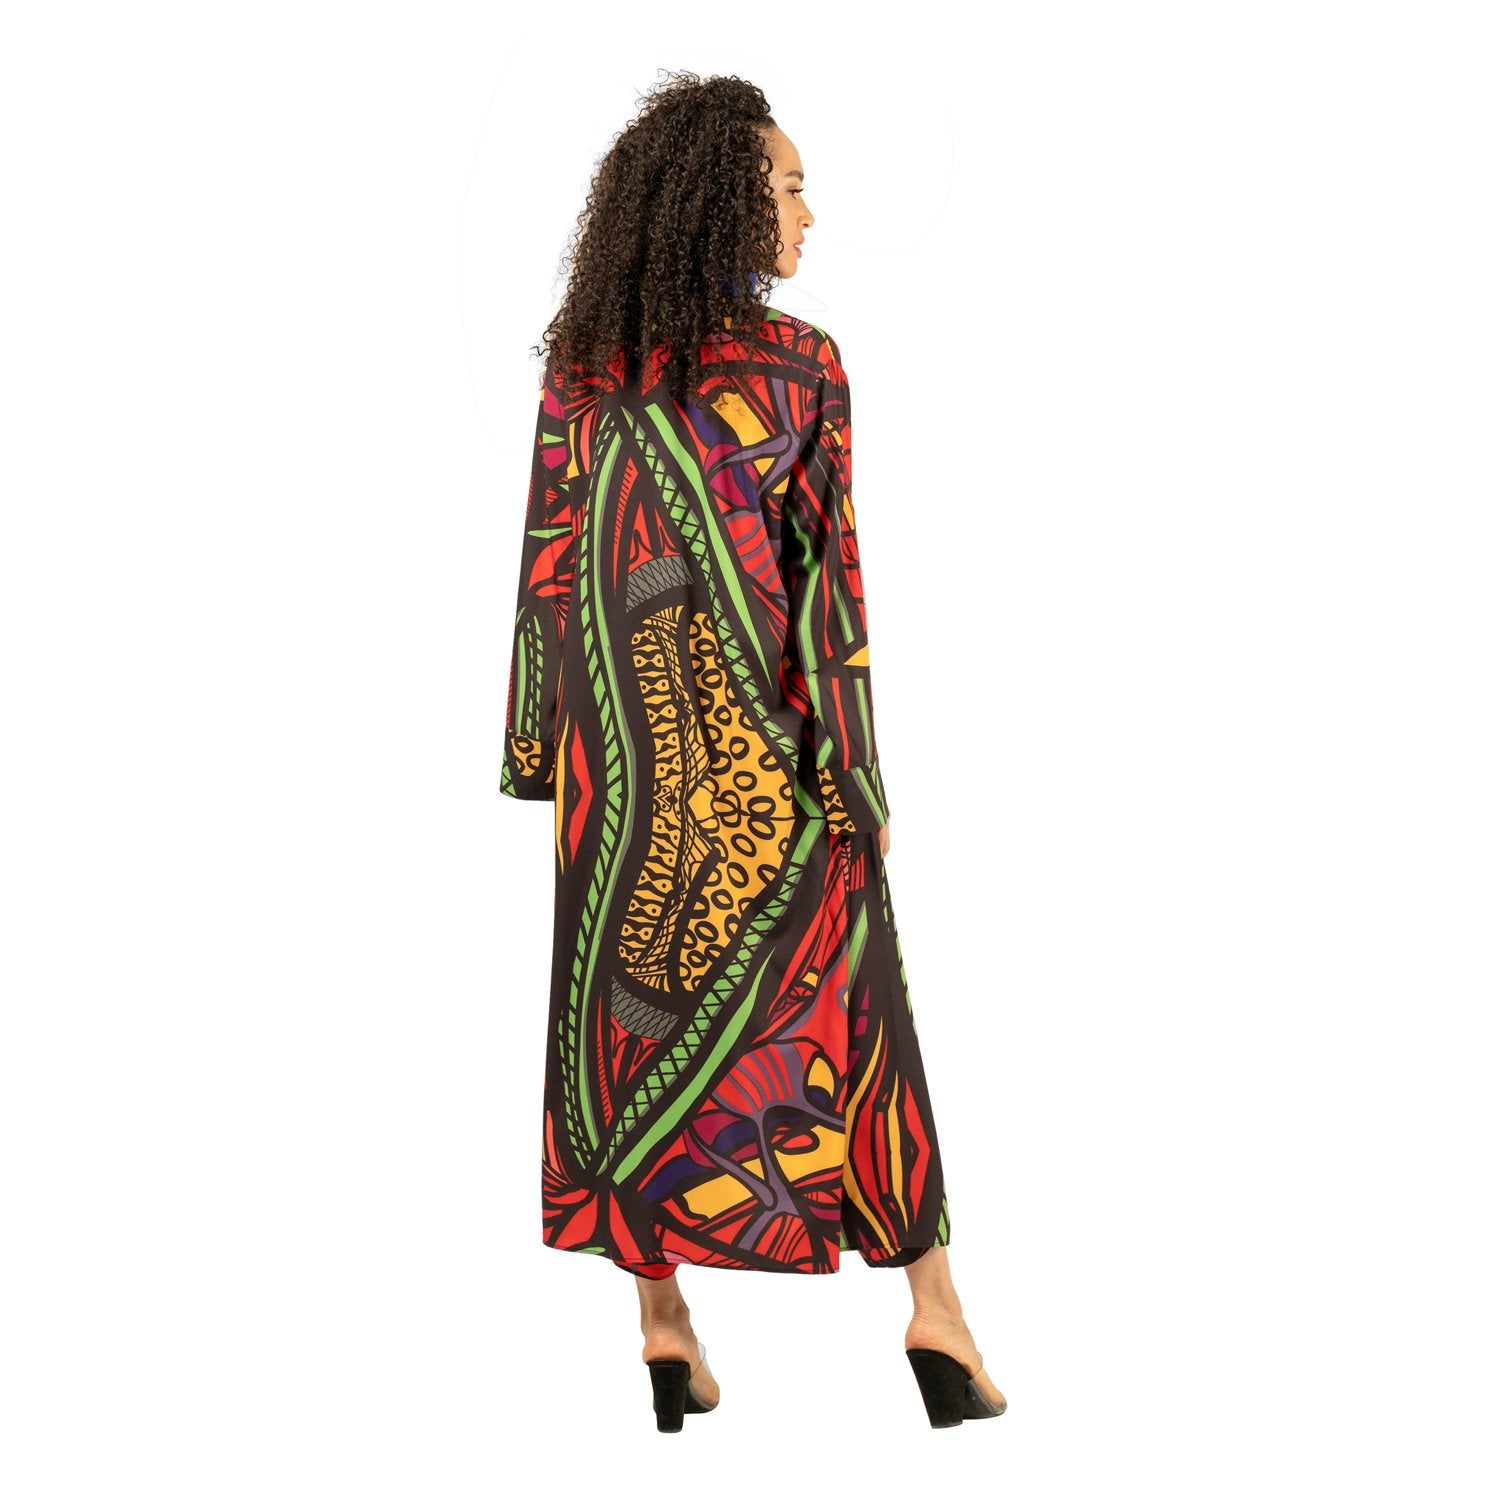 Back view of red multi print kimono duster with slit sleeves and pockets as worn on model